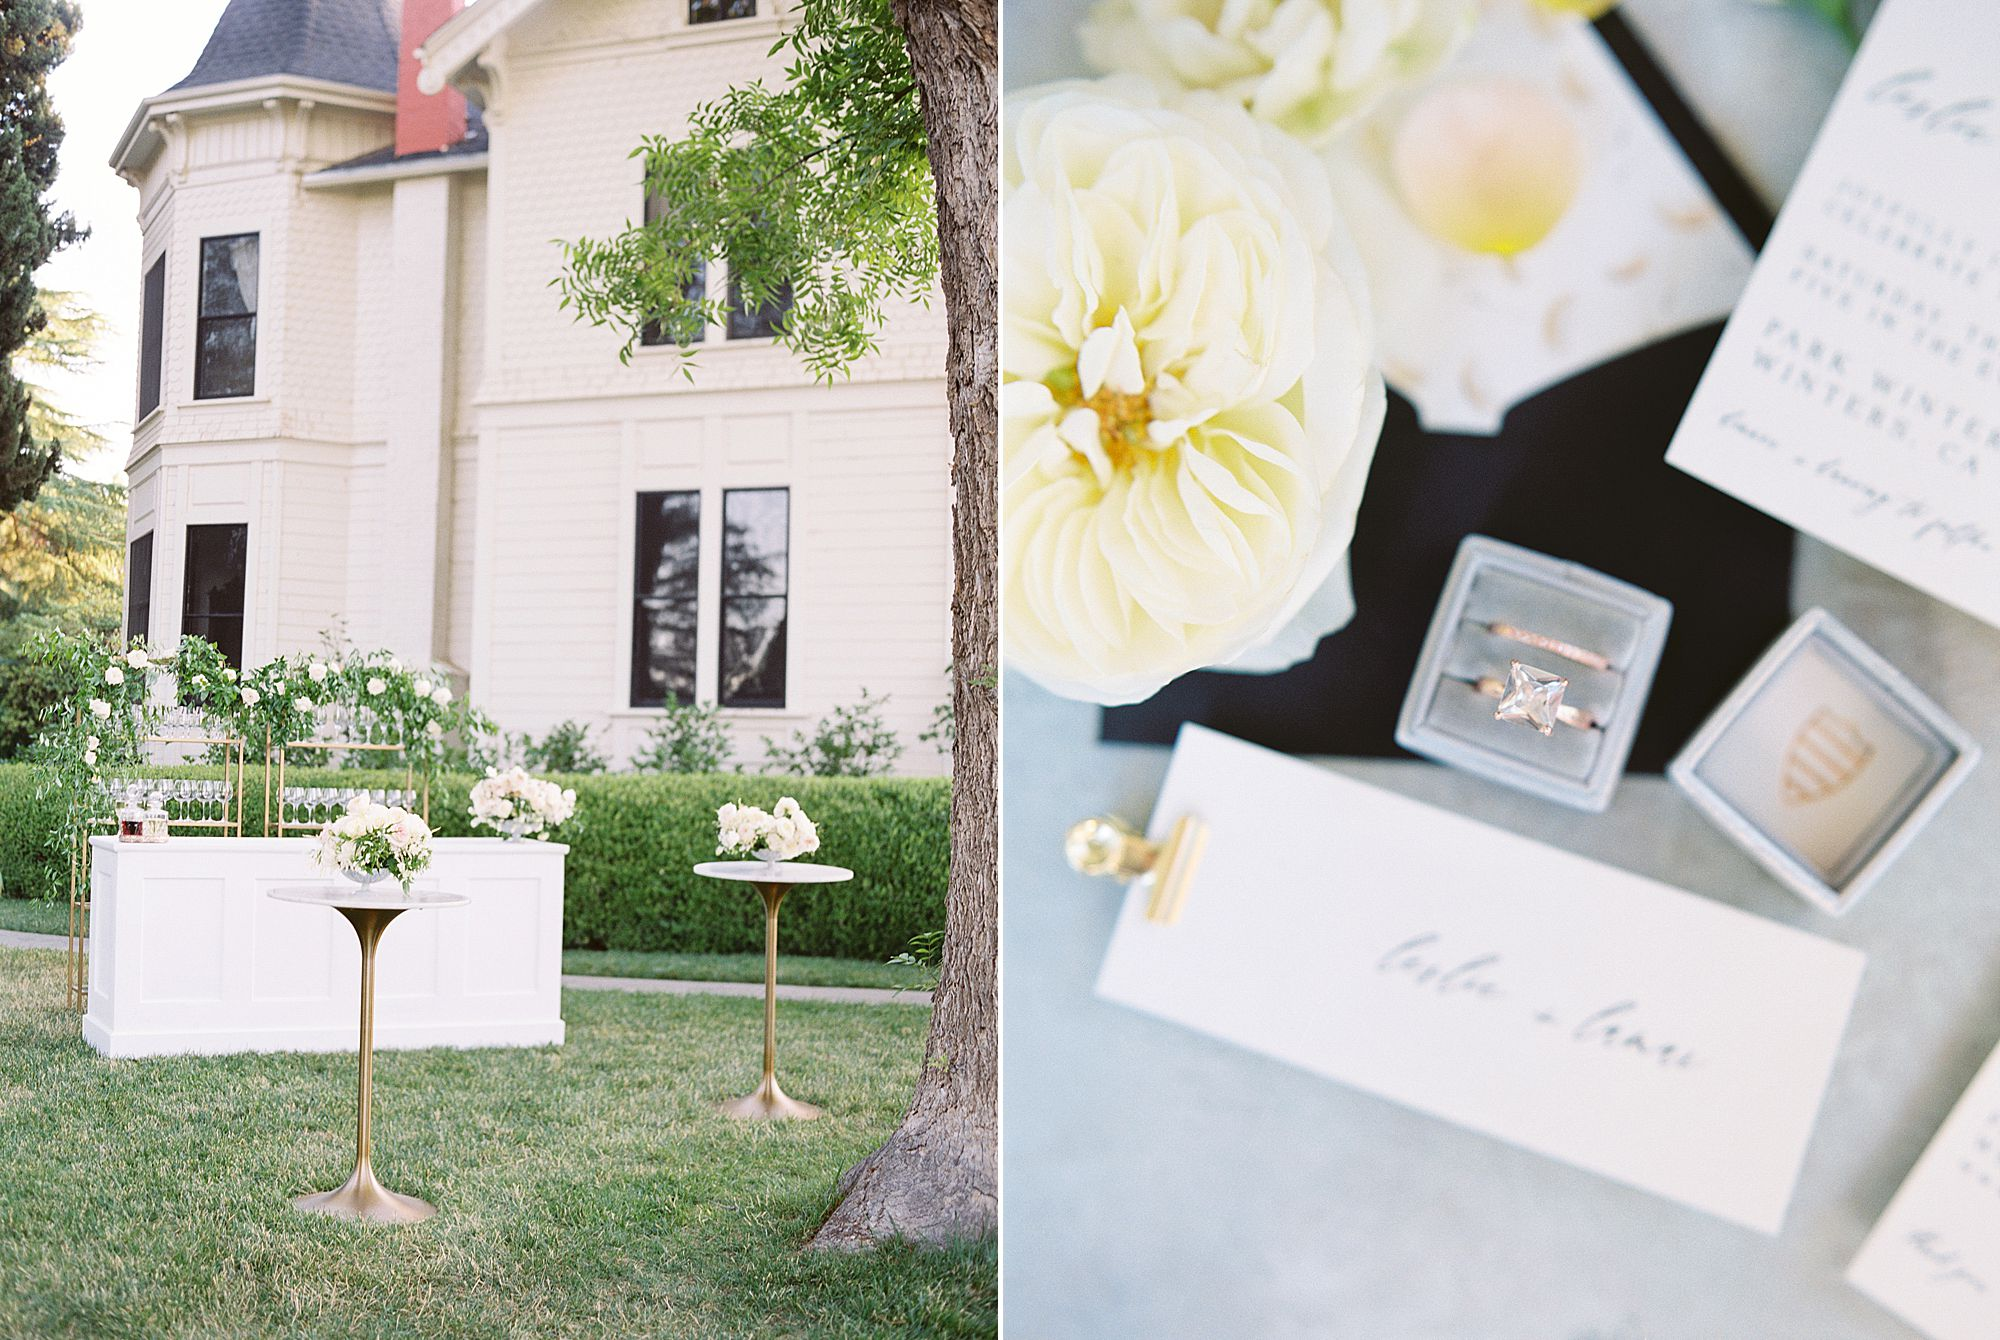 Park Winters Micro-Wedding Inspiration on Style Me Pretty - Stephanie Teague Events - Ashley Baumgartner - Park Winters Wedding - Black Tie Wedding - Micro-Wedding Sacramento Photographer_0029.jpg